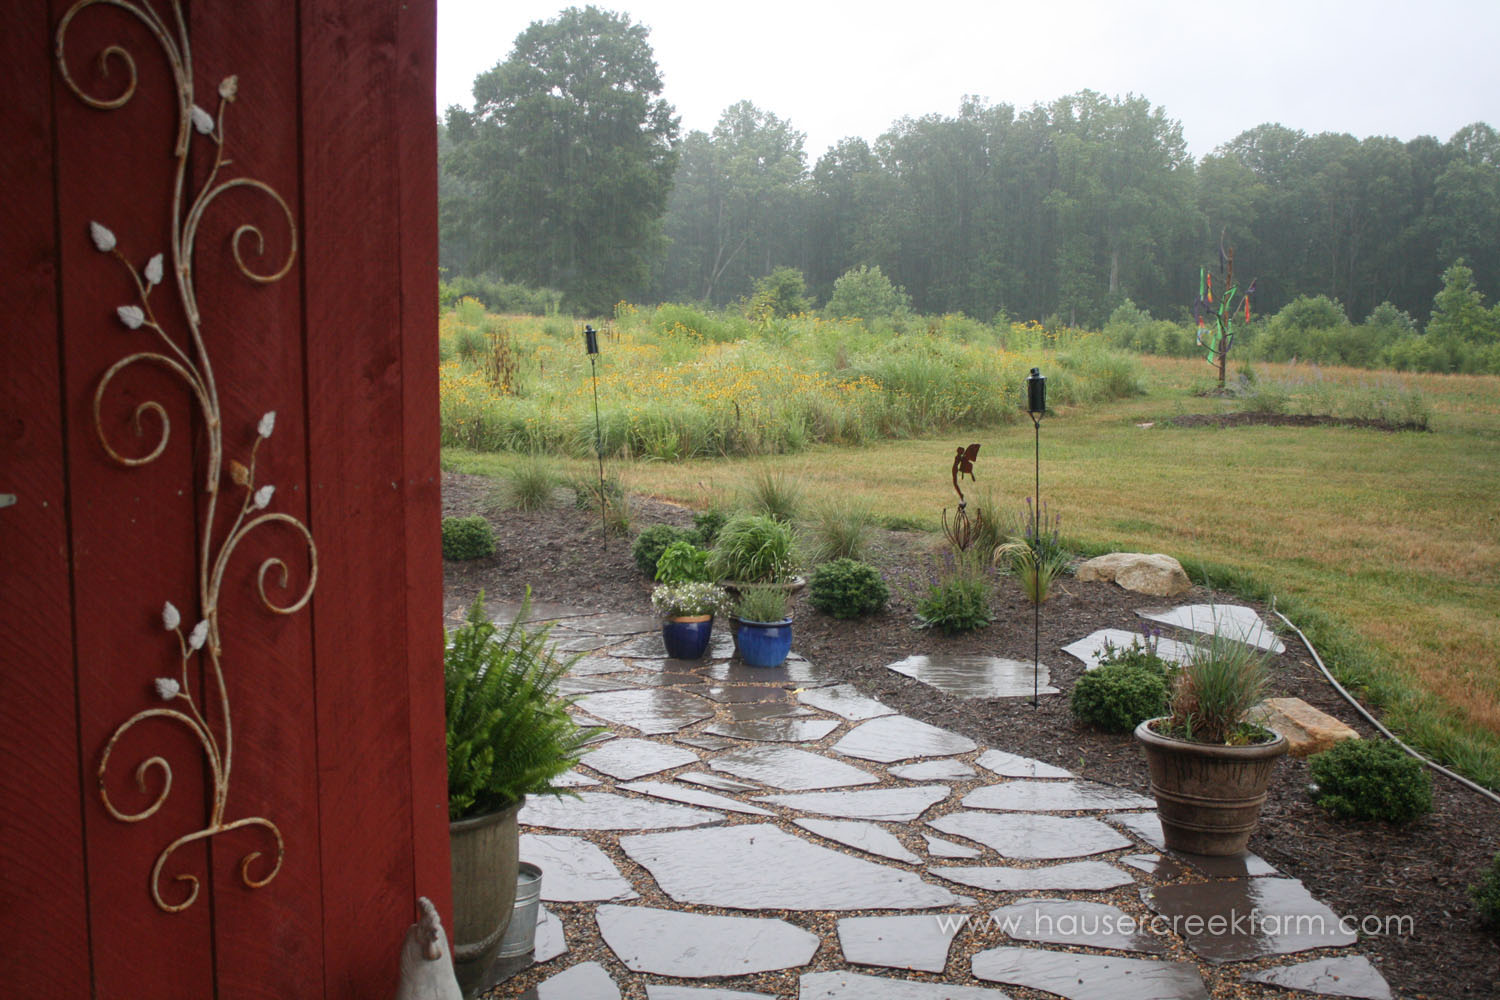 rainy-day-on-the-farm-slate-stepping-stones-planters-red-barn-wall-IMG_9596.jpg